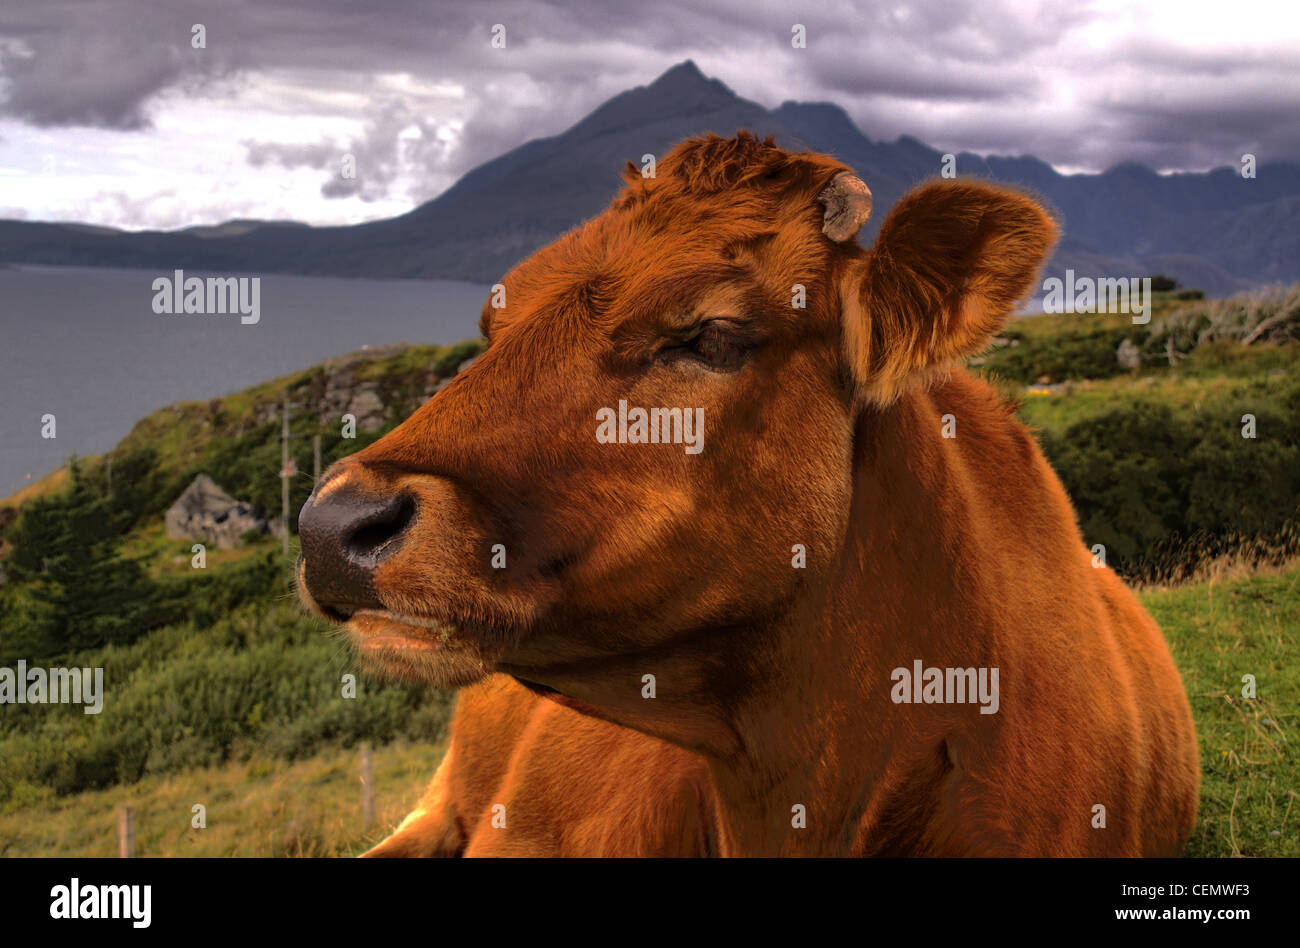 Brown Cow in isle of Skye, island, Scotland Hebrides, UK - Stock Image